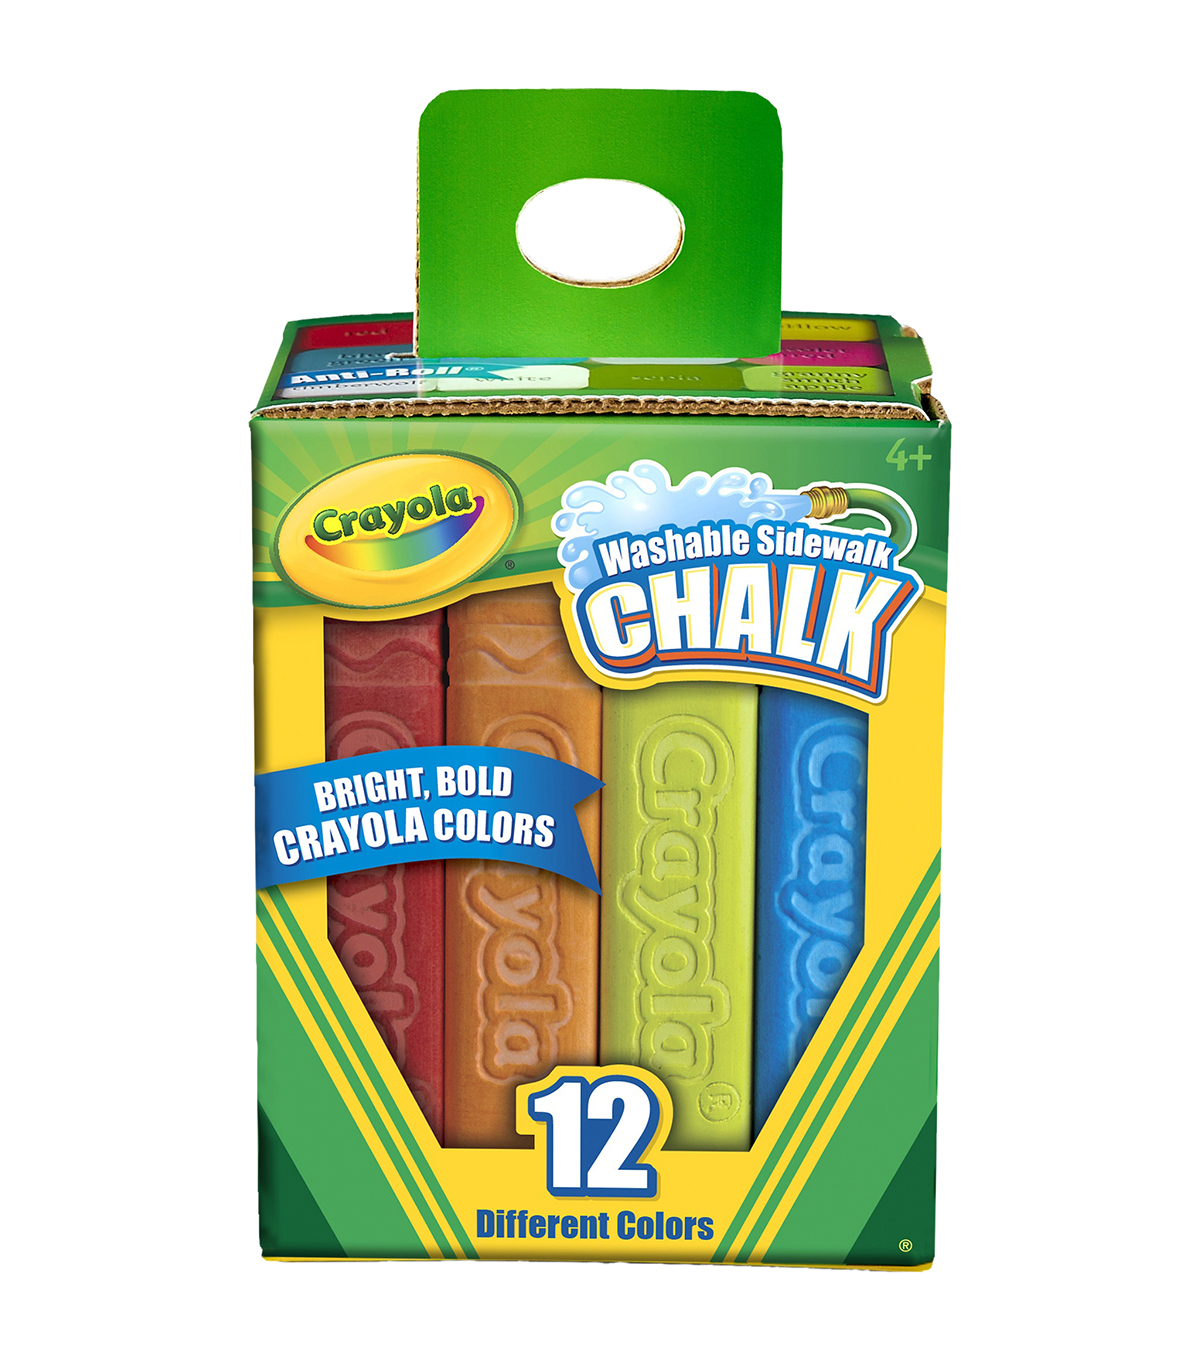 Crayola Sidewalk Chalk 12/Pkg-Assorted Colors